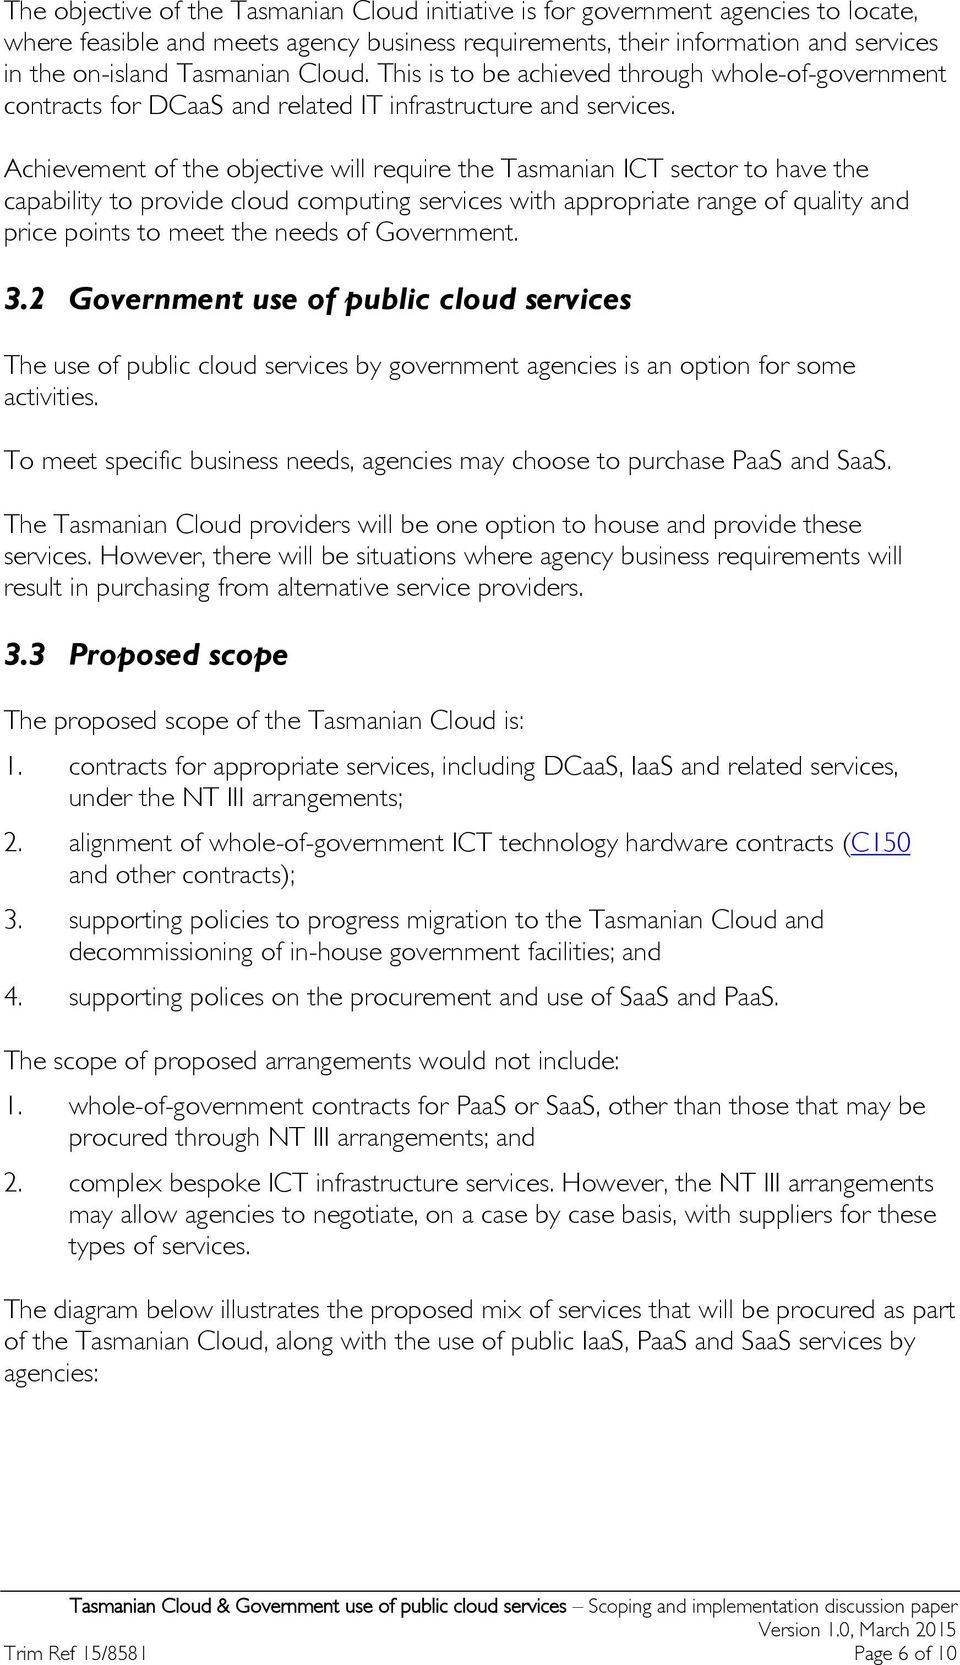 Achievement of the objective will require the Tasmanian ICT sector to have the capability to provide cloud computing services with appropriate range of quality and price points to meet the needs of